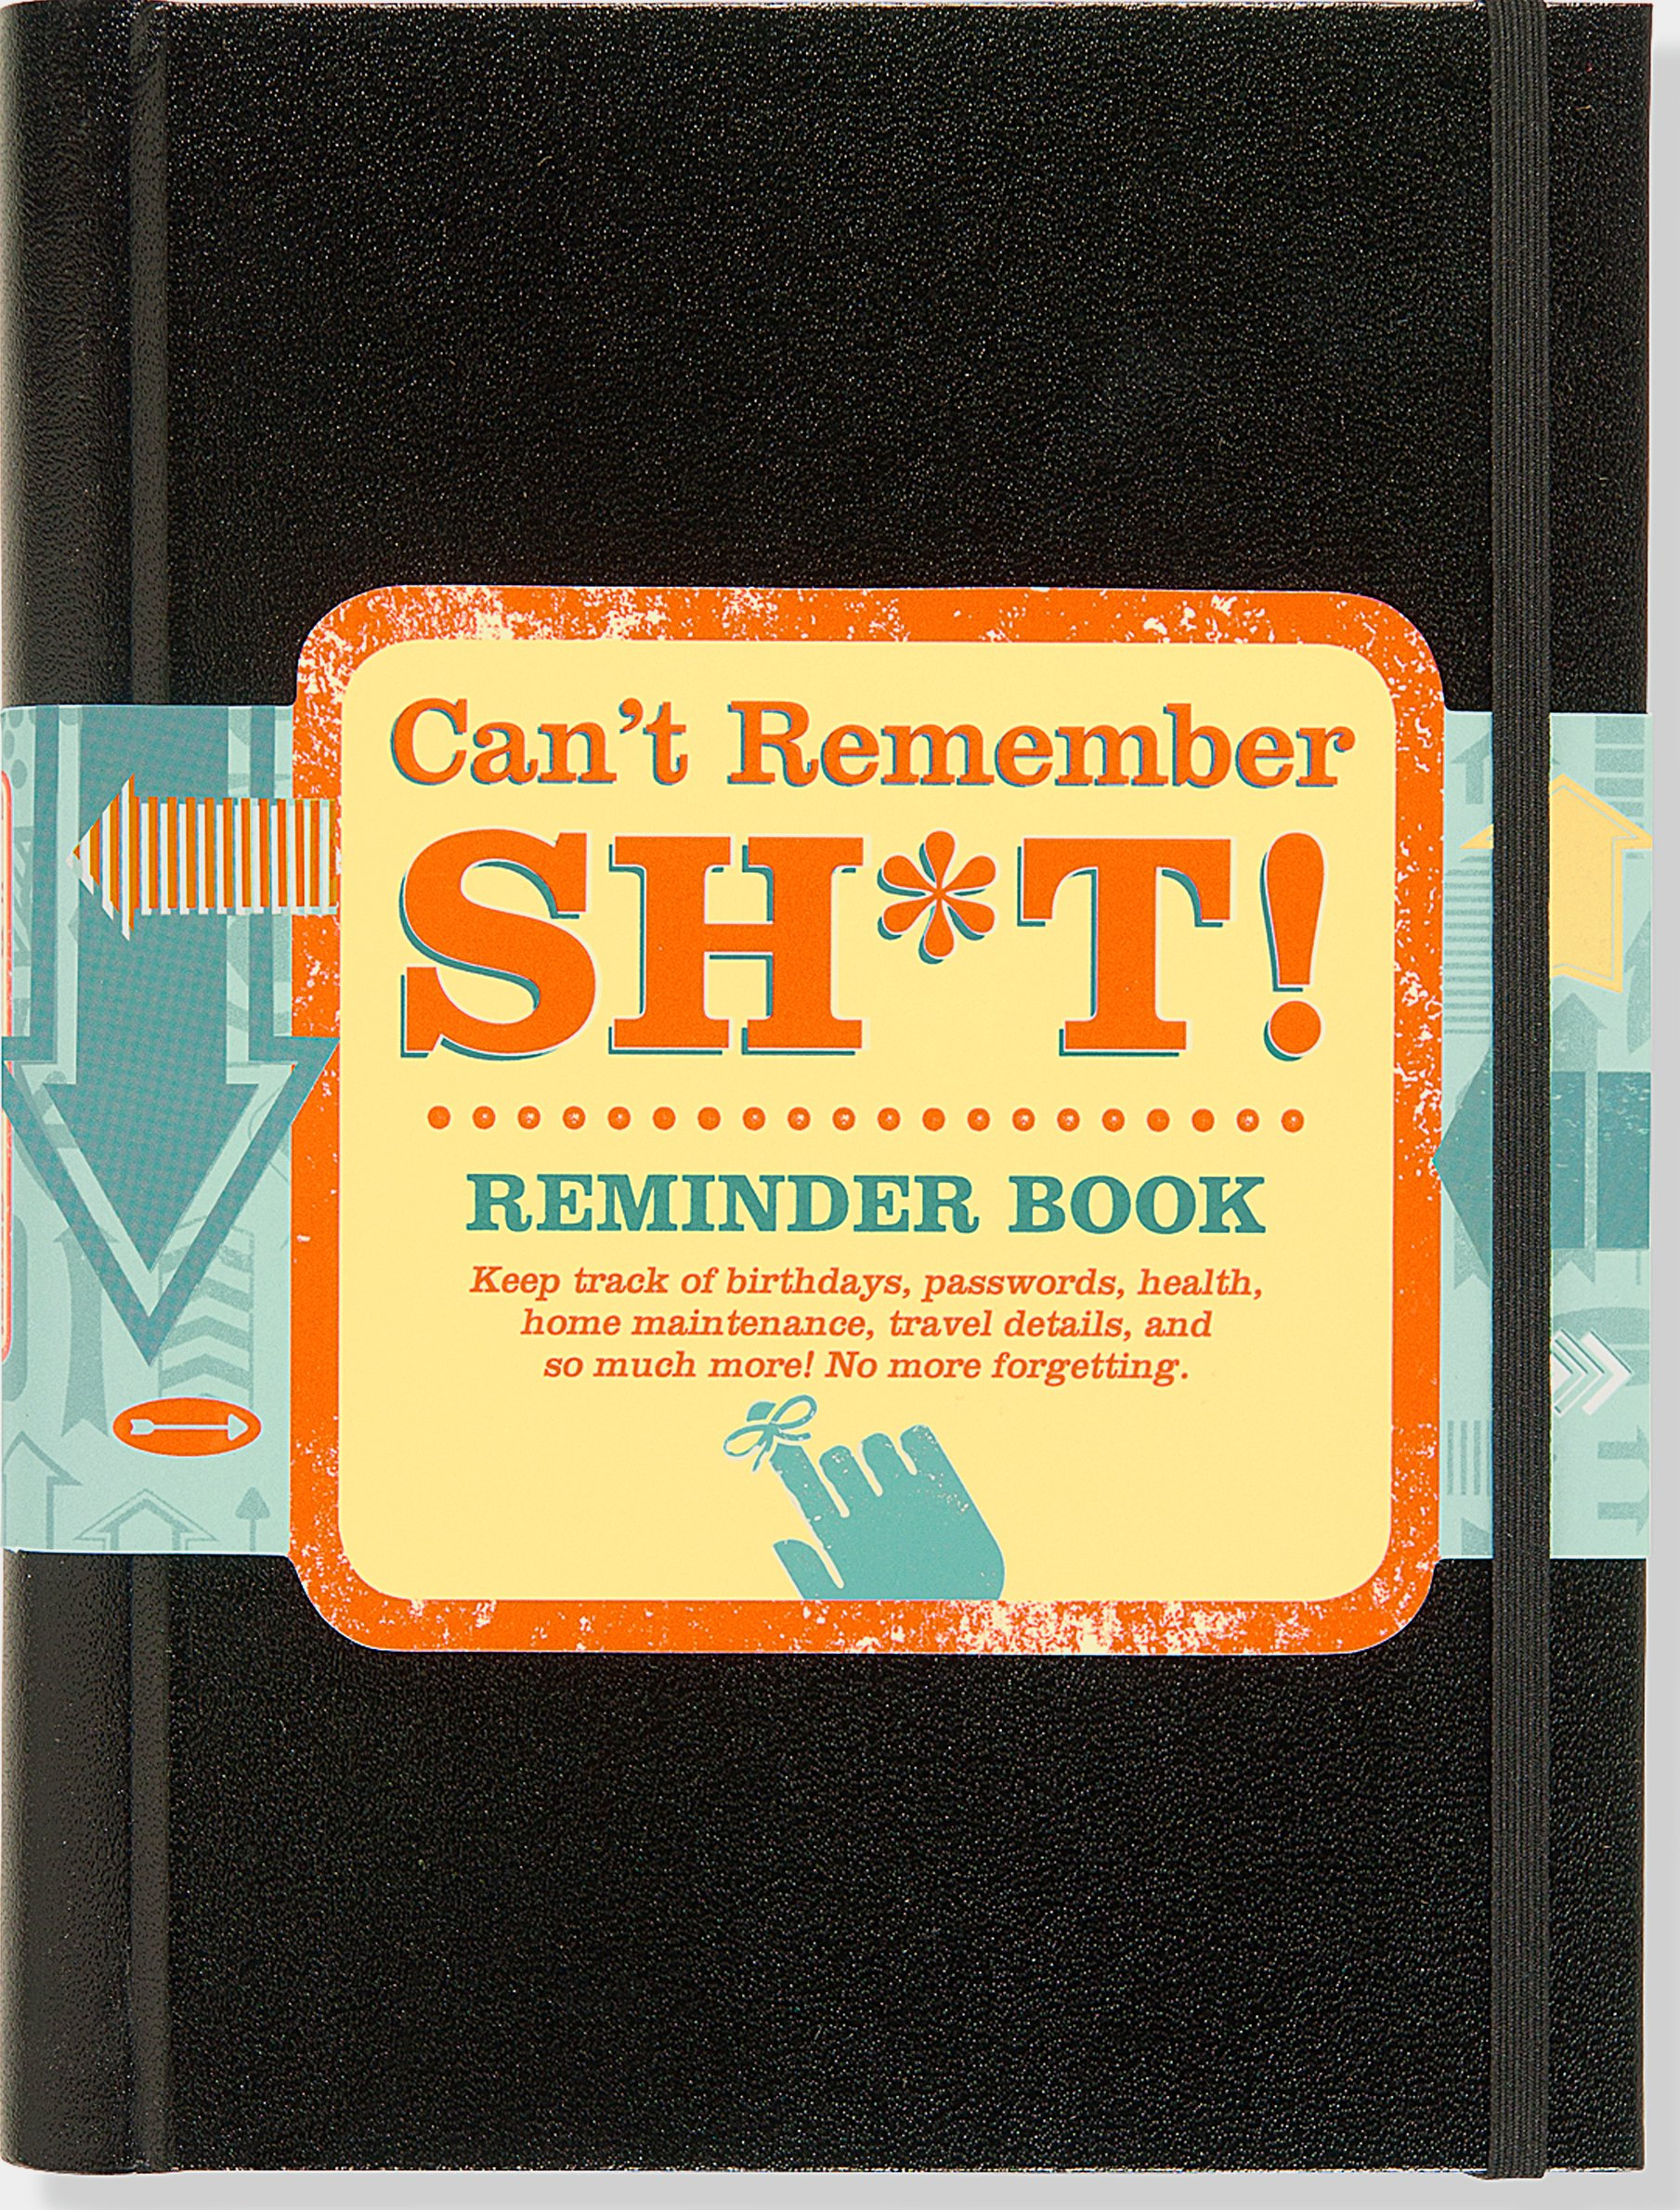 Can't Remember Shi*t Reminder Book Hardcover-spiral – Oct 23 2015 Peter Pauper Press 1441319441 Nonfiction/ Non-Classifiable